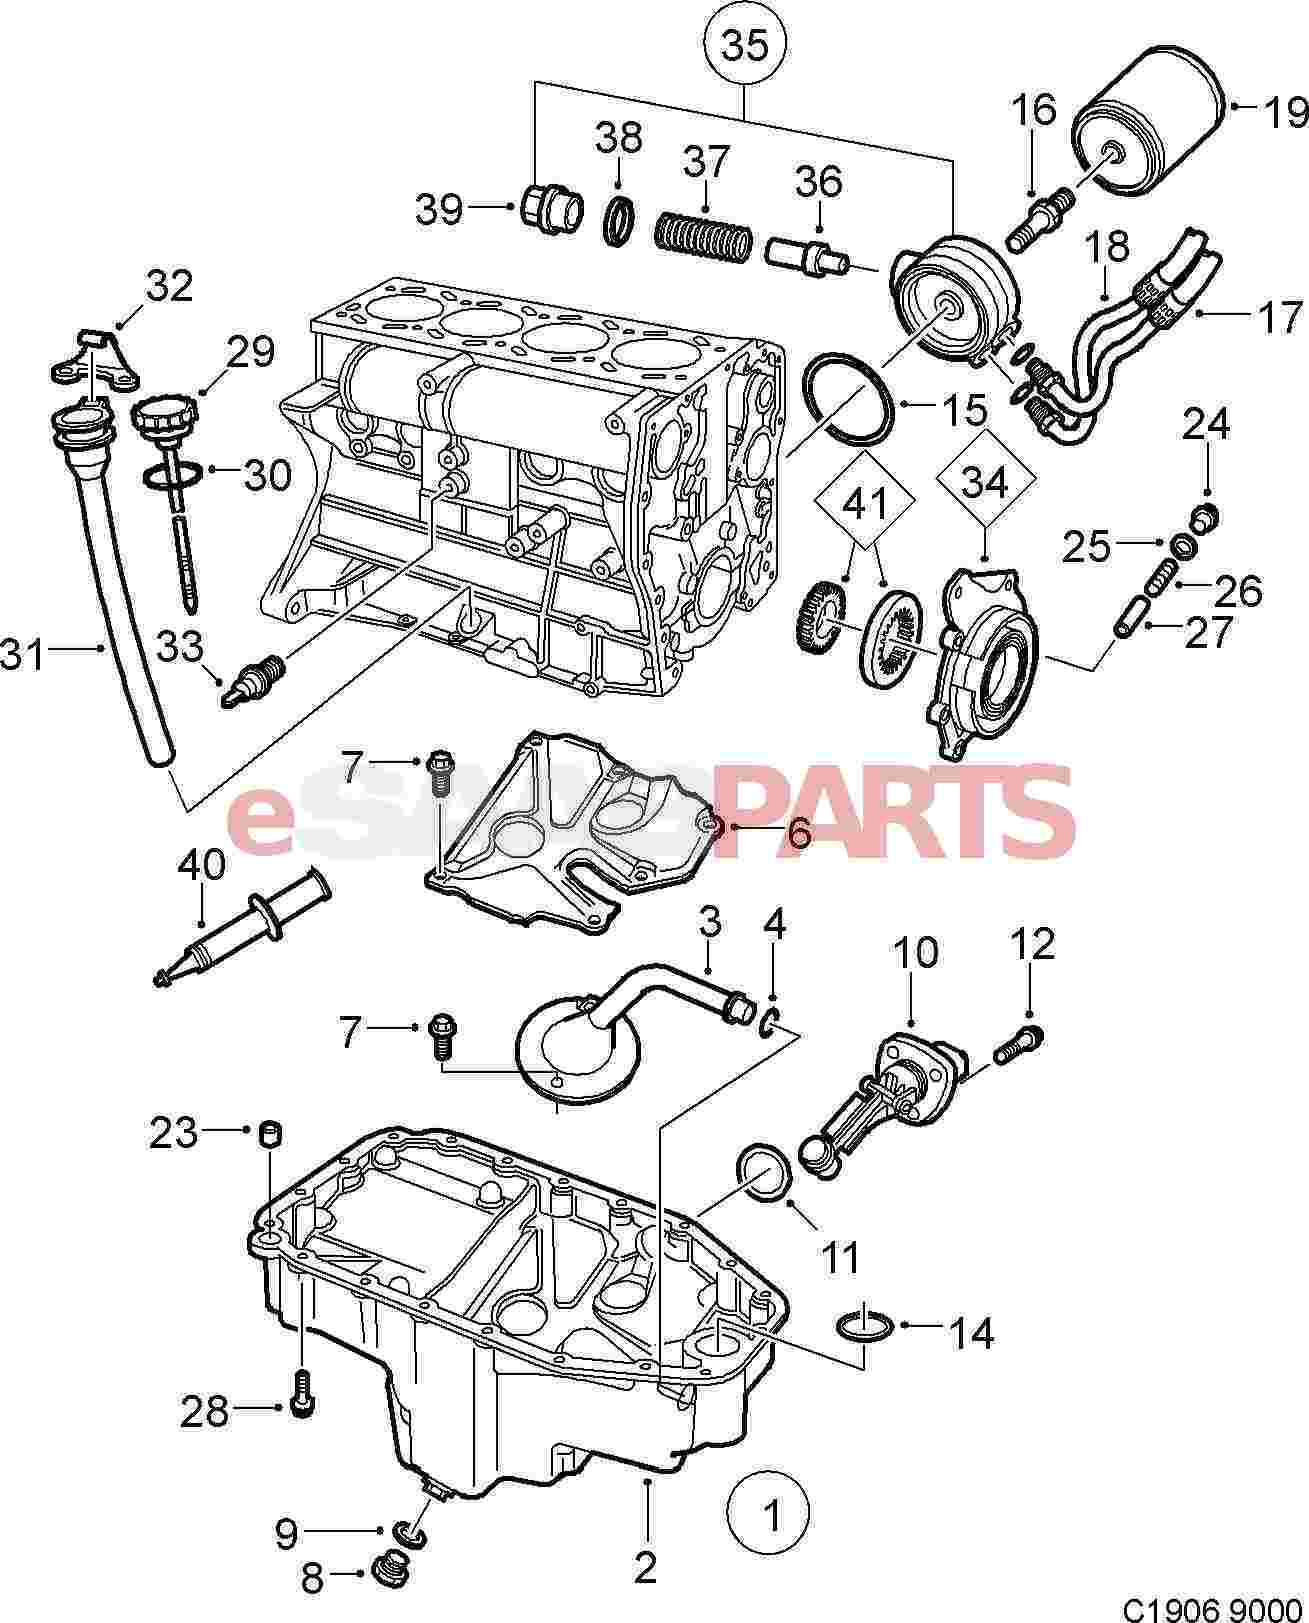 saab 9 3 engine diagram 94 ford bronco stereo wiring 900 2 3l auto